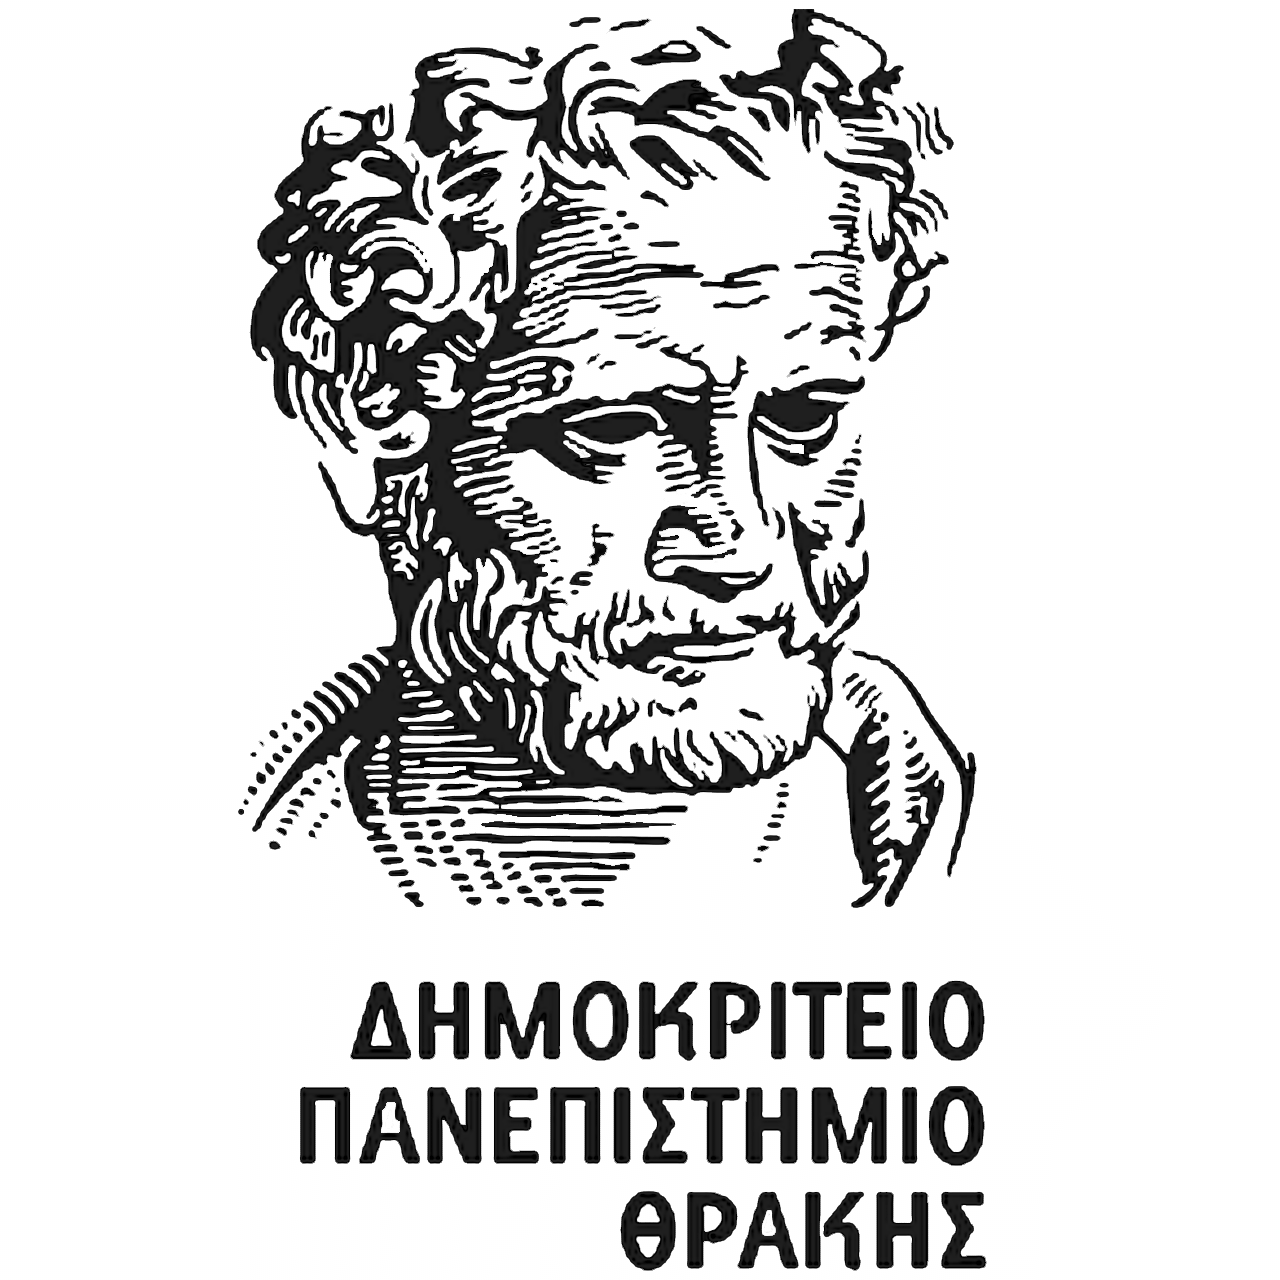 Democritus University of Thrace, Dept. of History and Ethnology